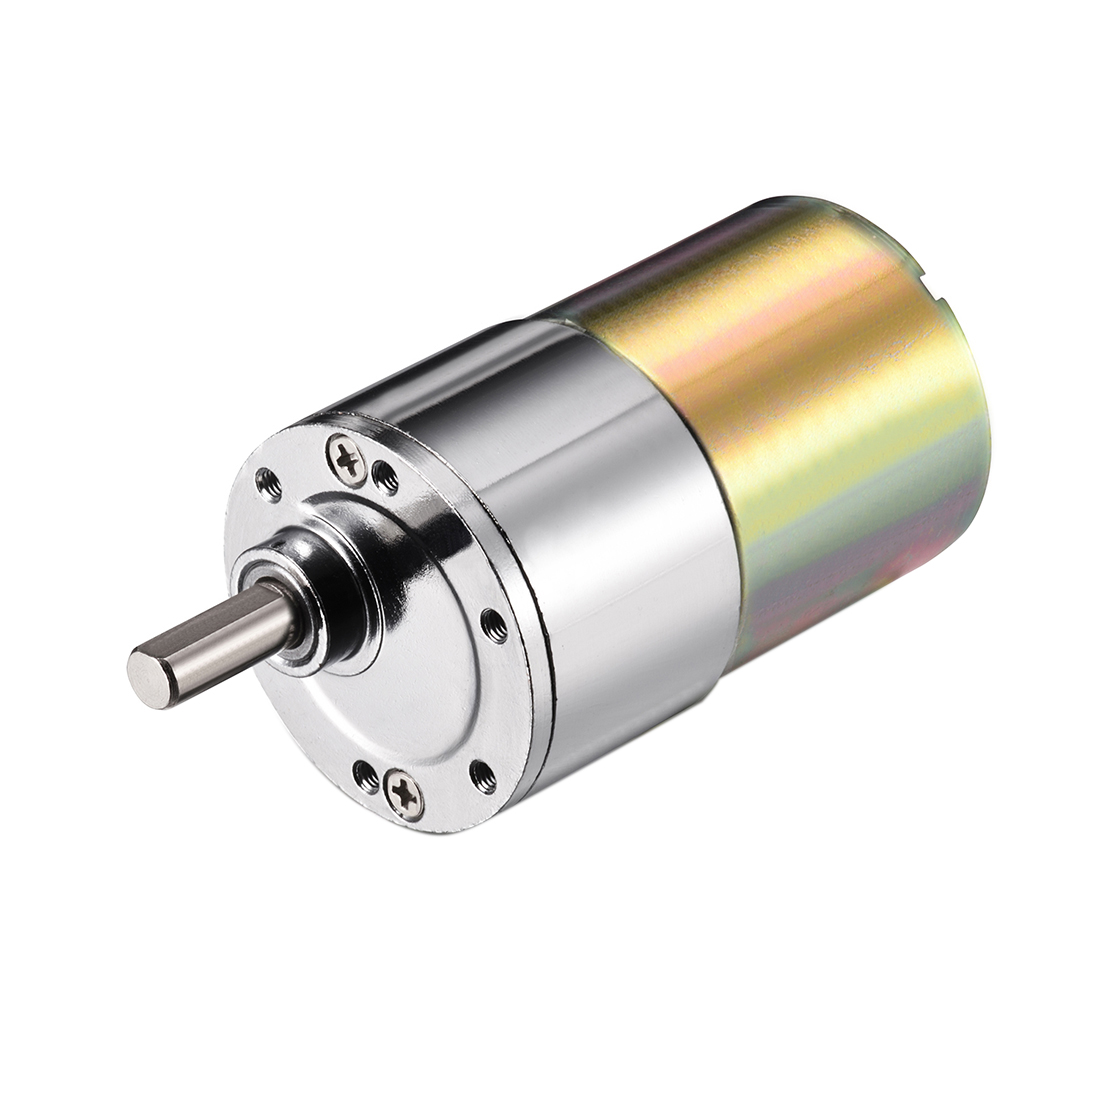 DC 24V 5RPM Micro Gear Box Motor Speed Reduction Electric Gearbox Eccentric Output Shaft